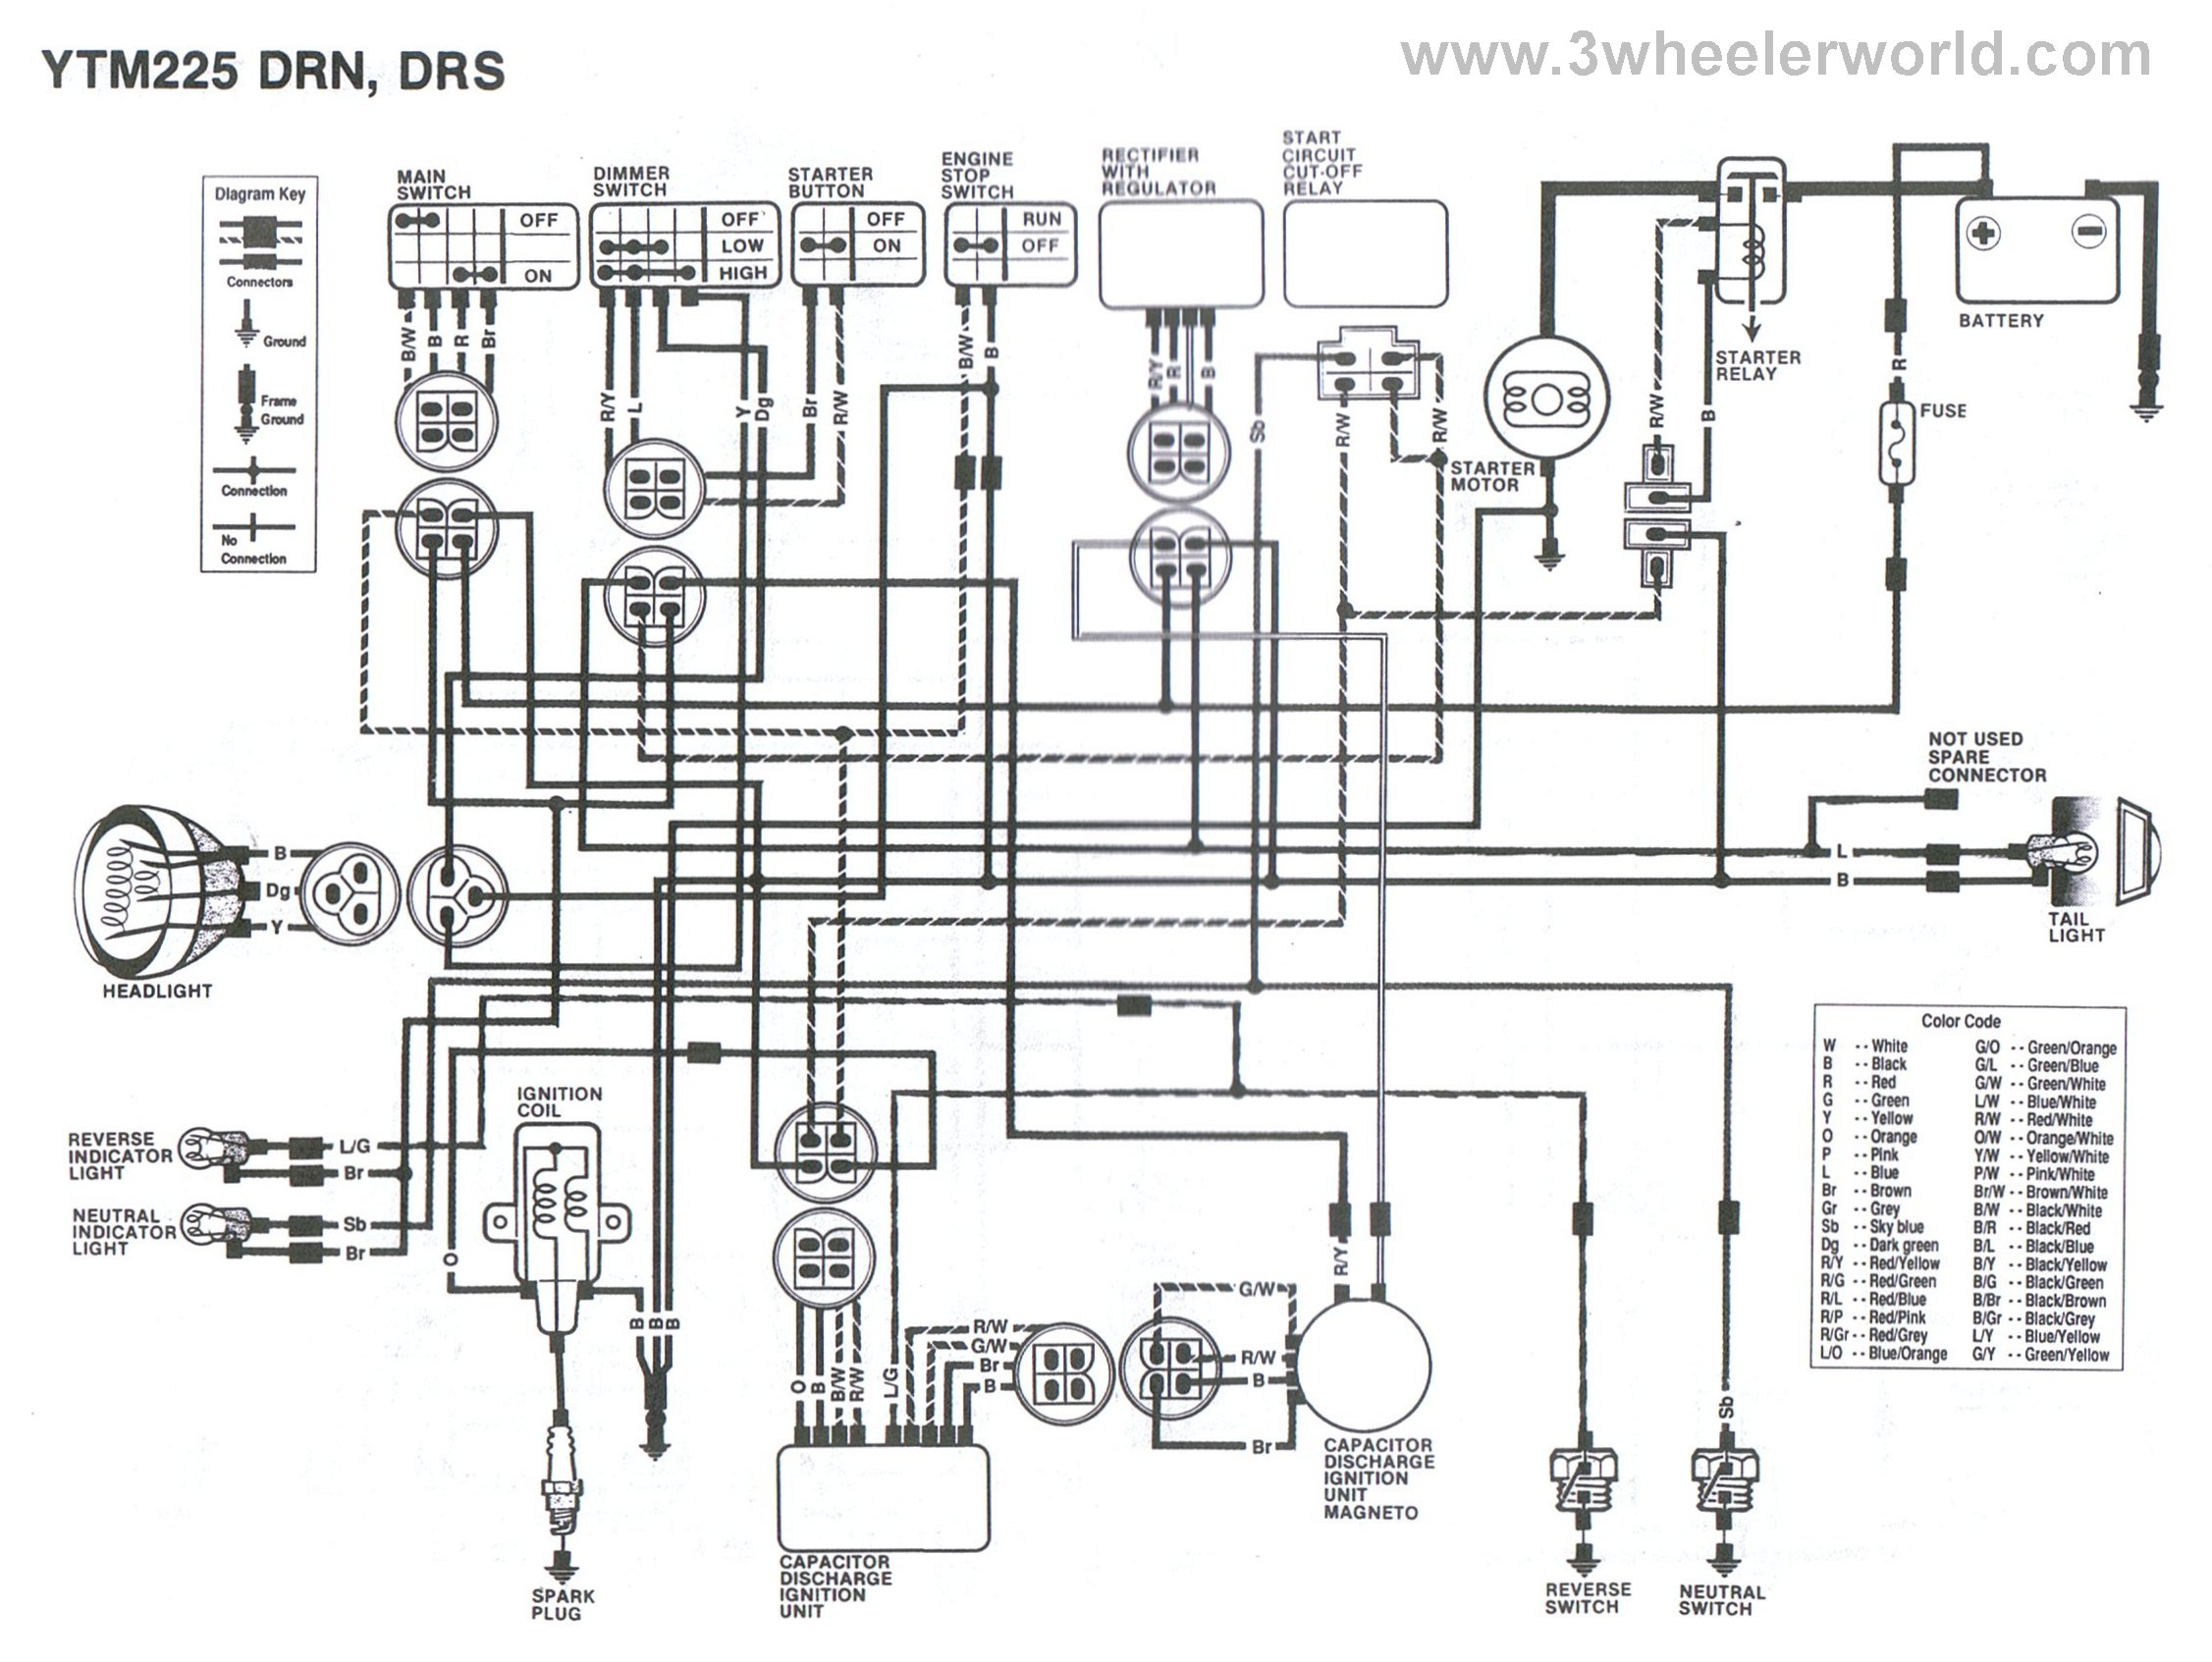 wiring diagram for yamaha ytm 225dx